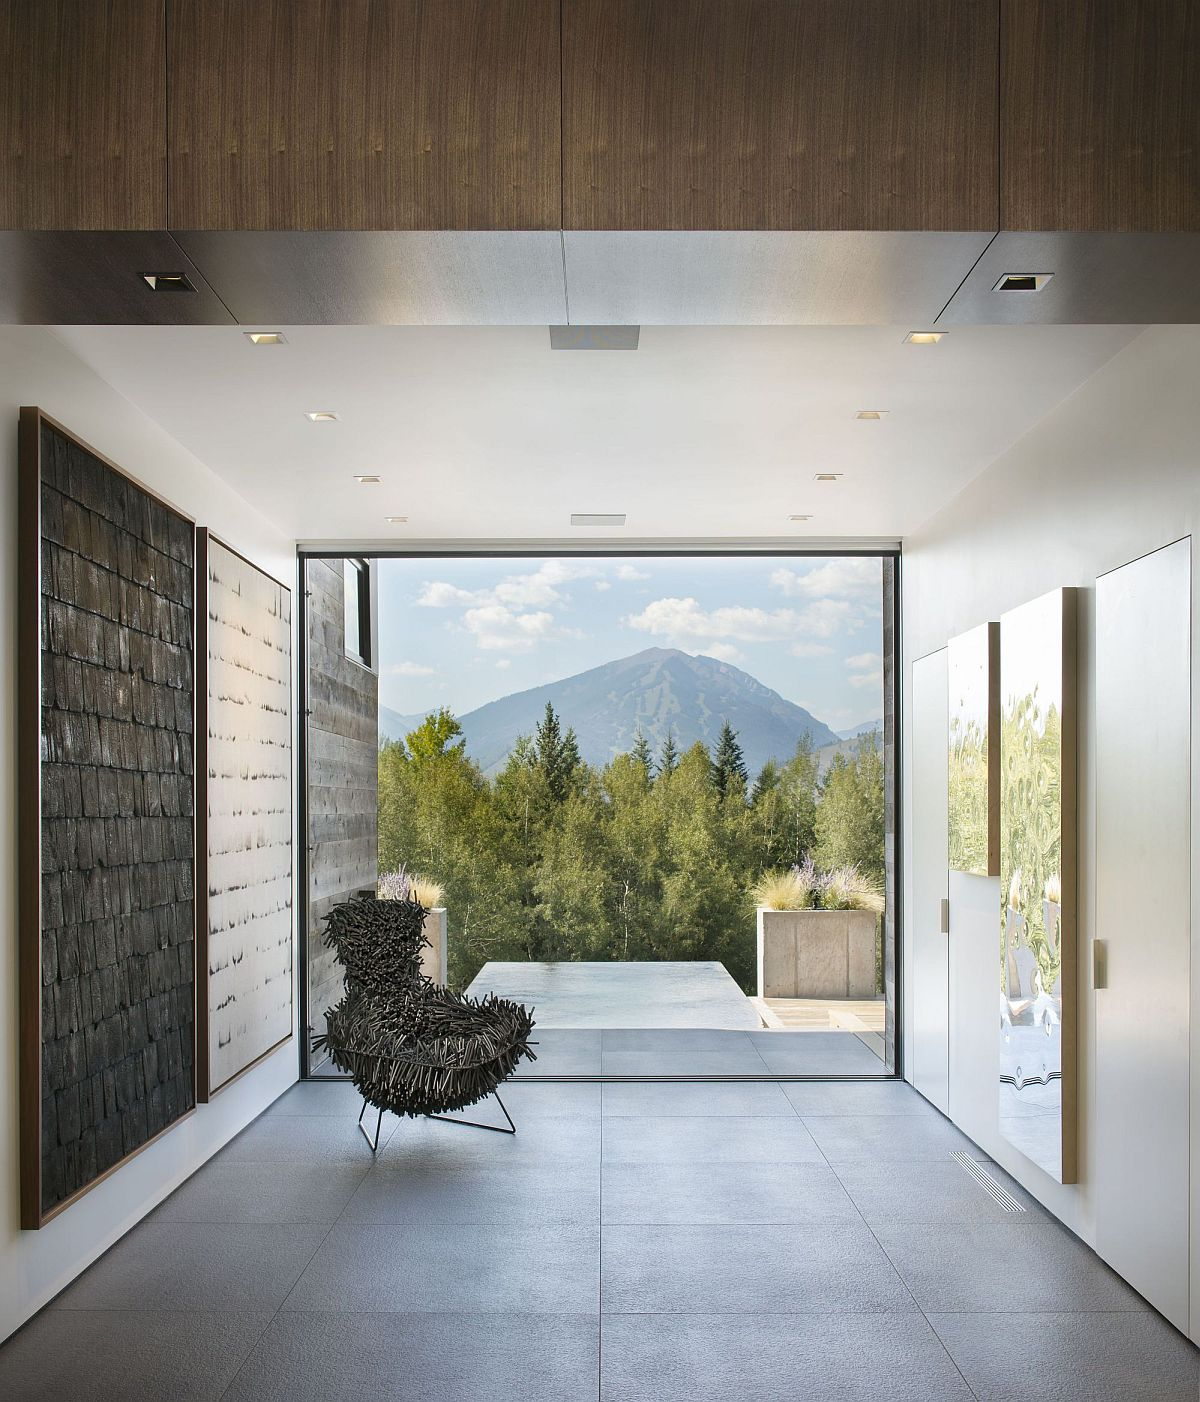 Picture window frame perfectly captures the view of distant mountains and the scenery beyond